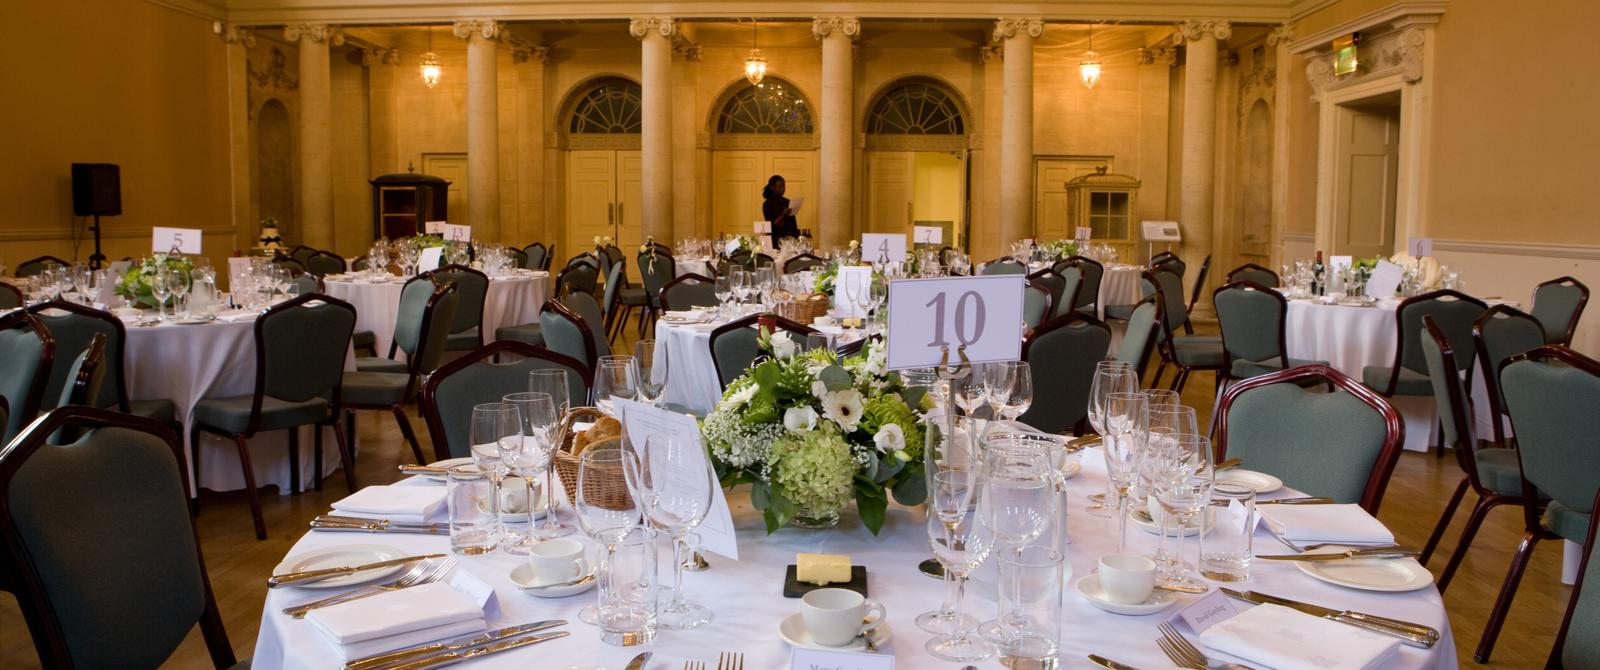 Image: A private event in the Tea Room